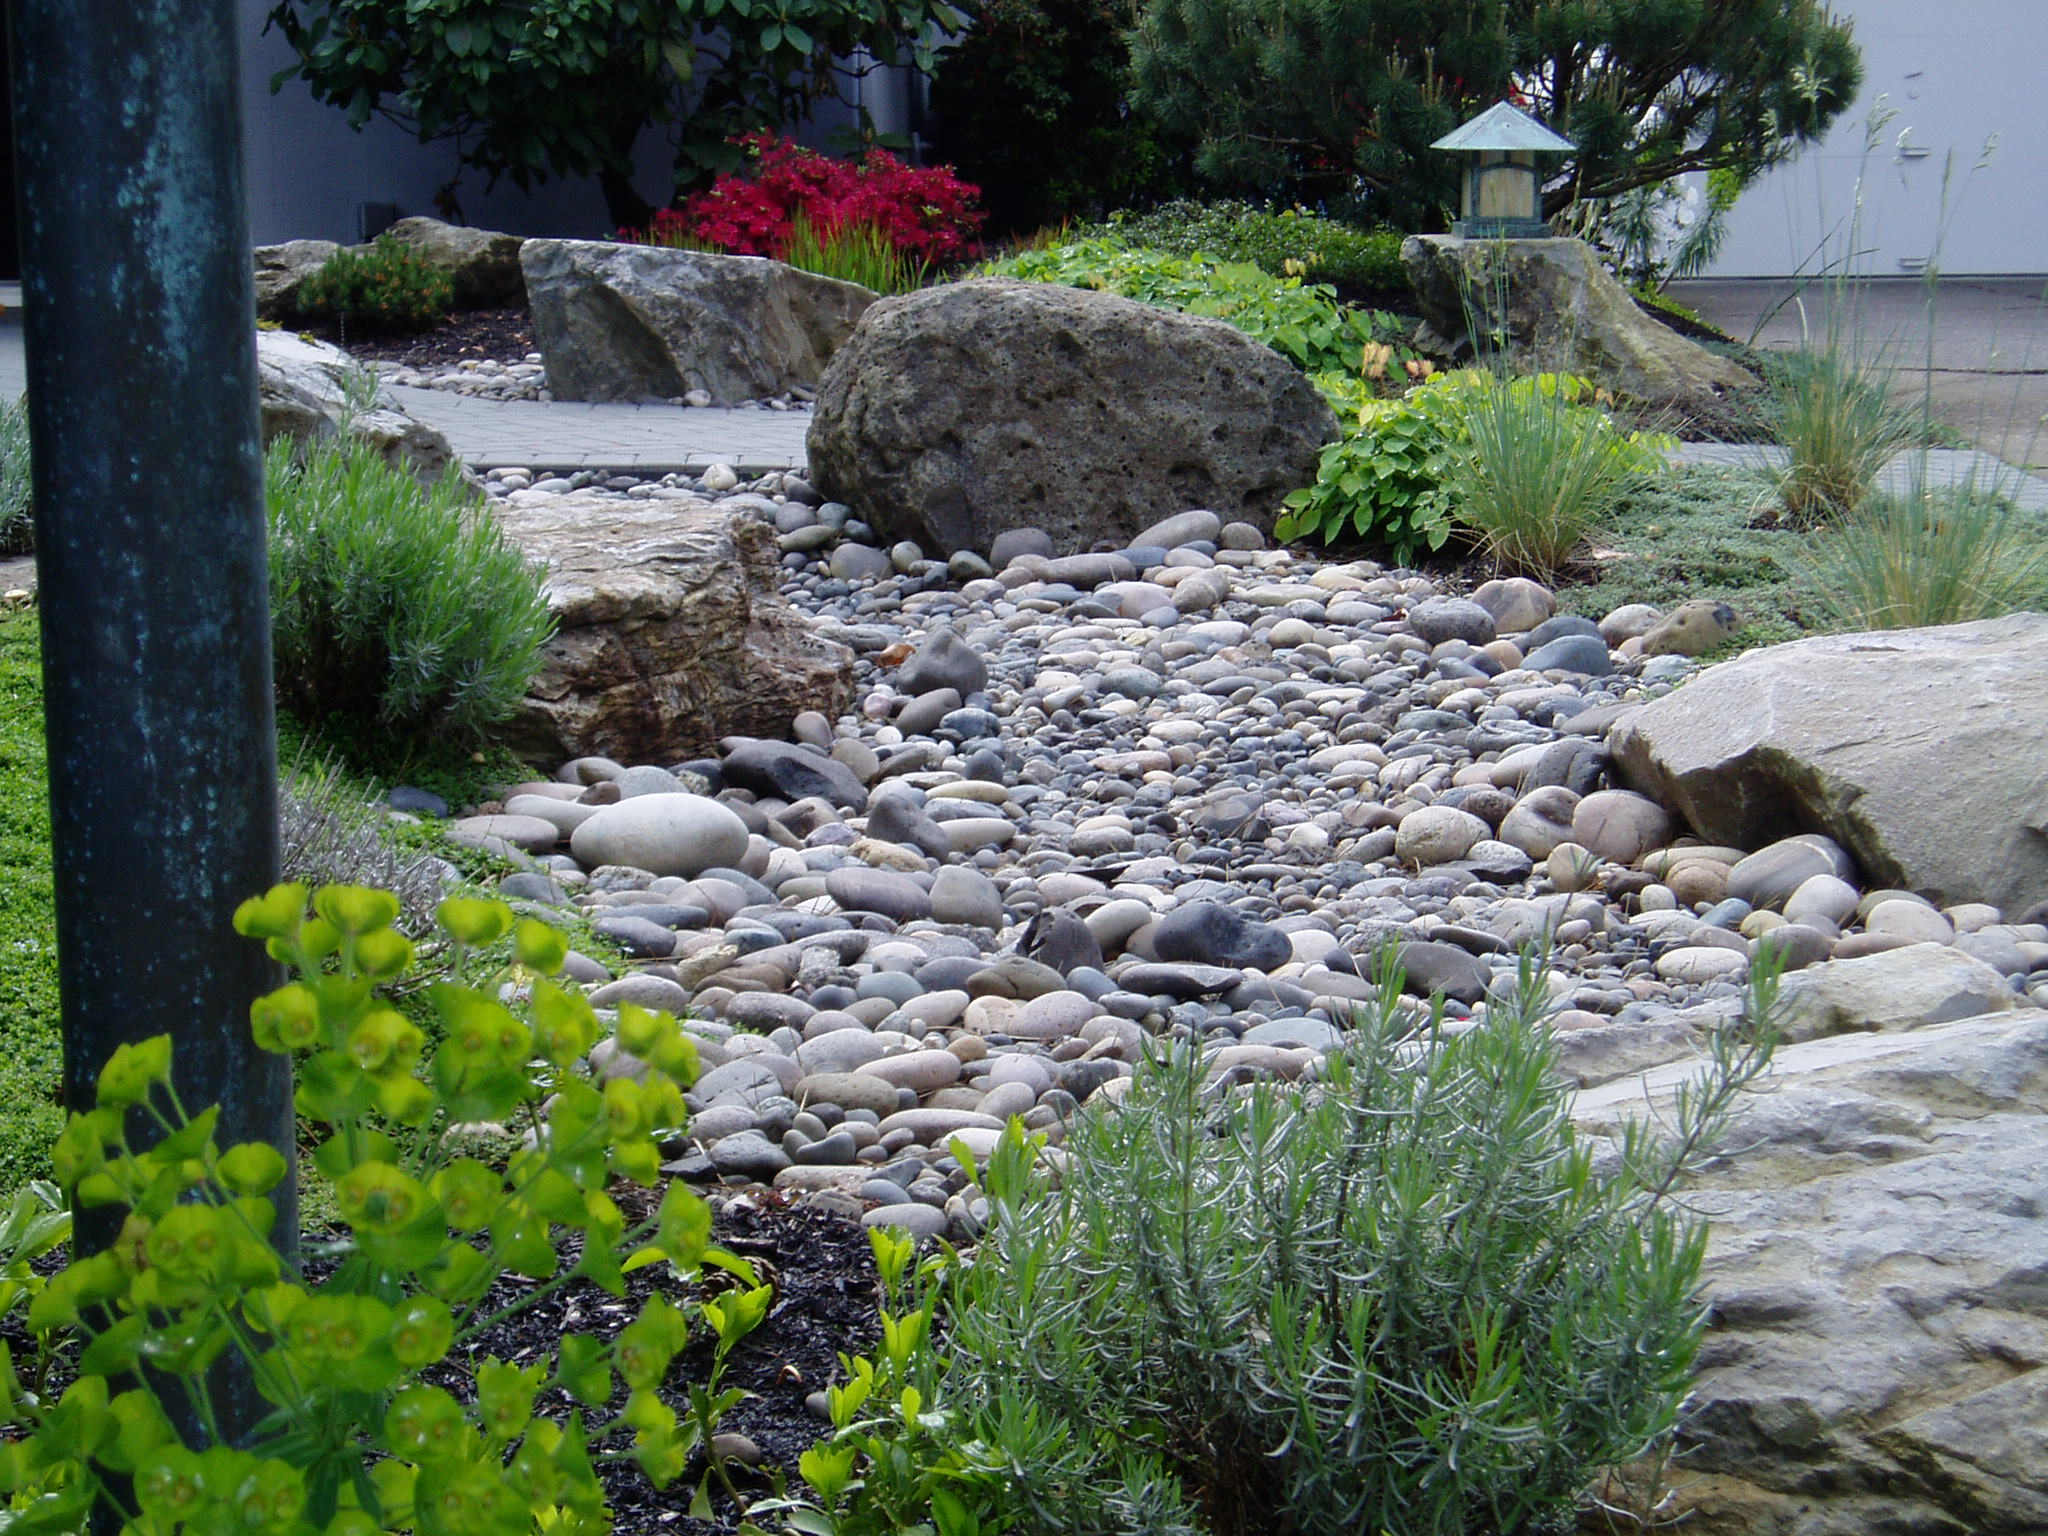 River Rock Design Ideas rock solid landscape stone center aggregate pavers mulch ideas river rocks listed front yard landscaping Garden Design With Portland Rock And Landscape Supply Everything You Need To Help With Ideas For